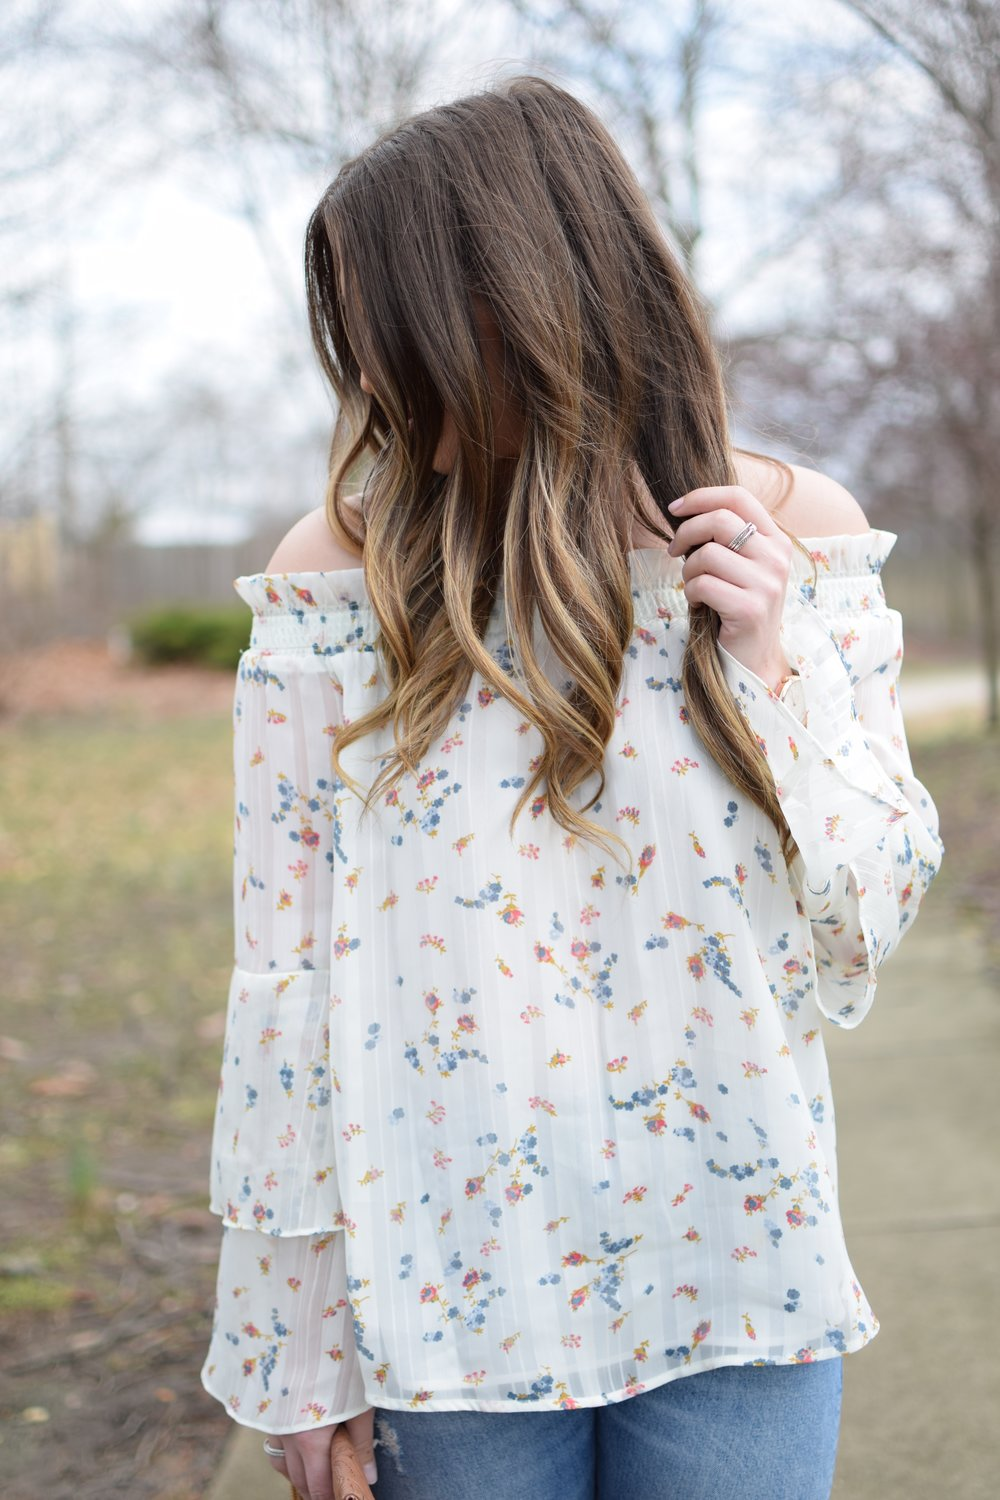 spring outfit idea / floral print top / off the shoulder